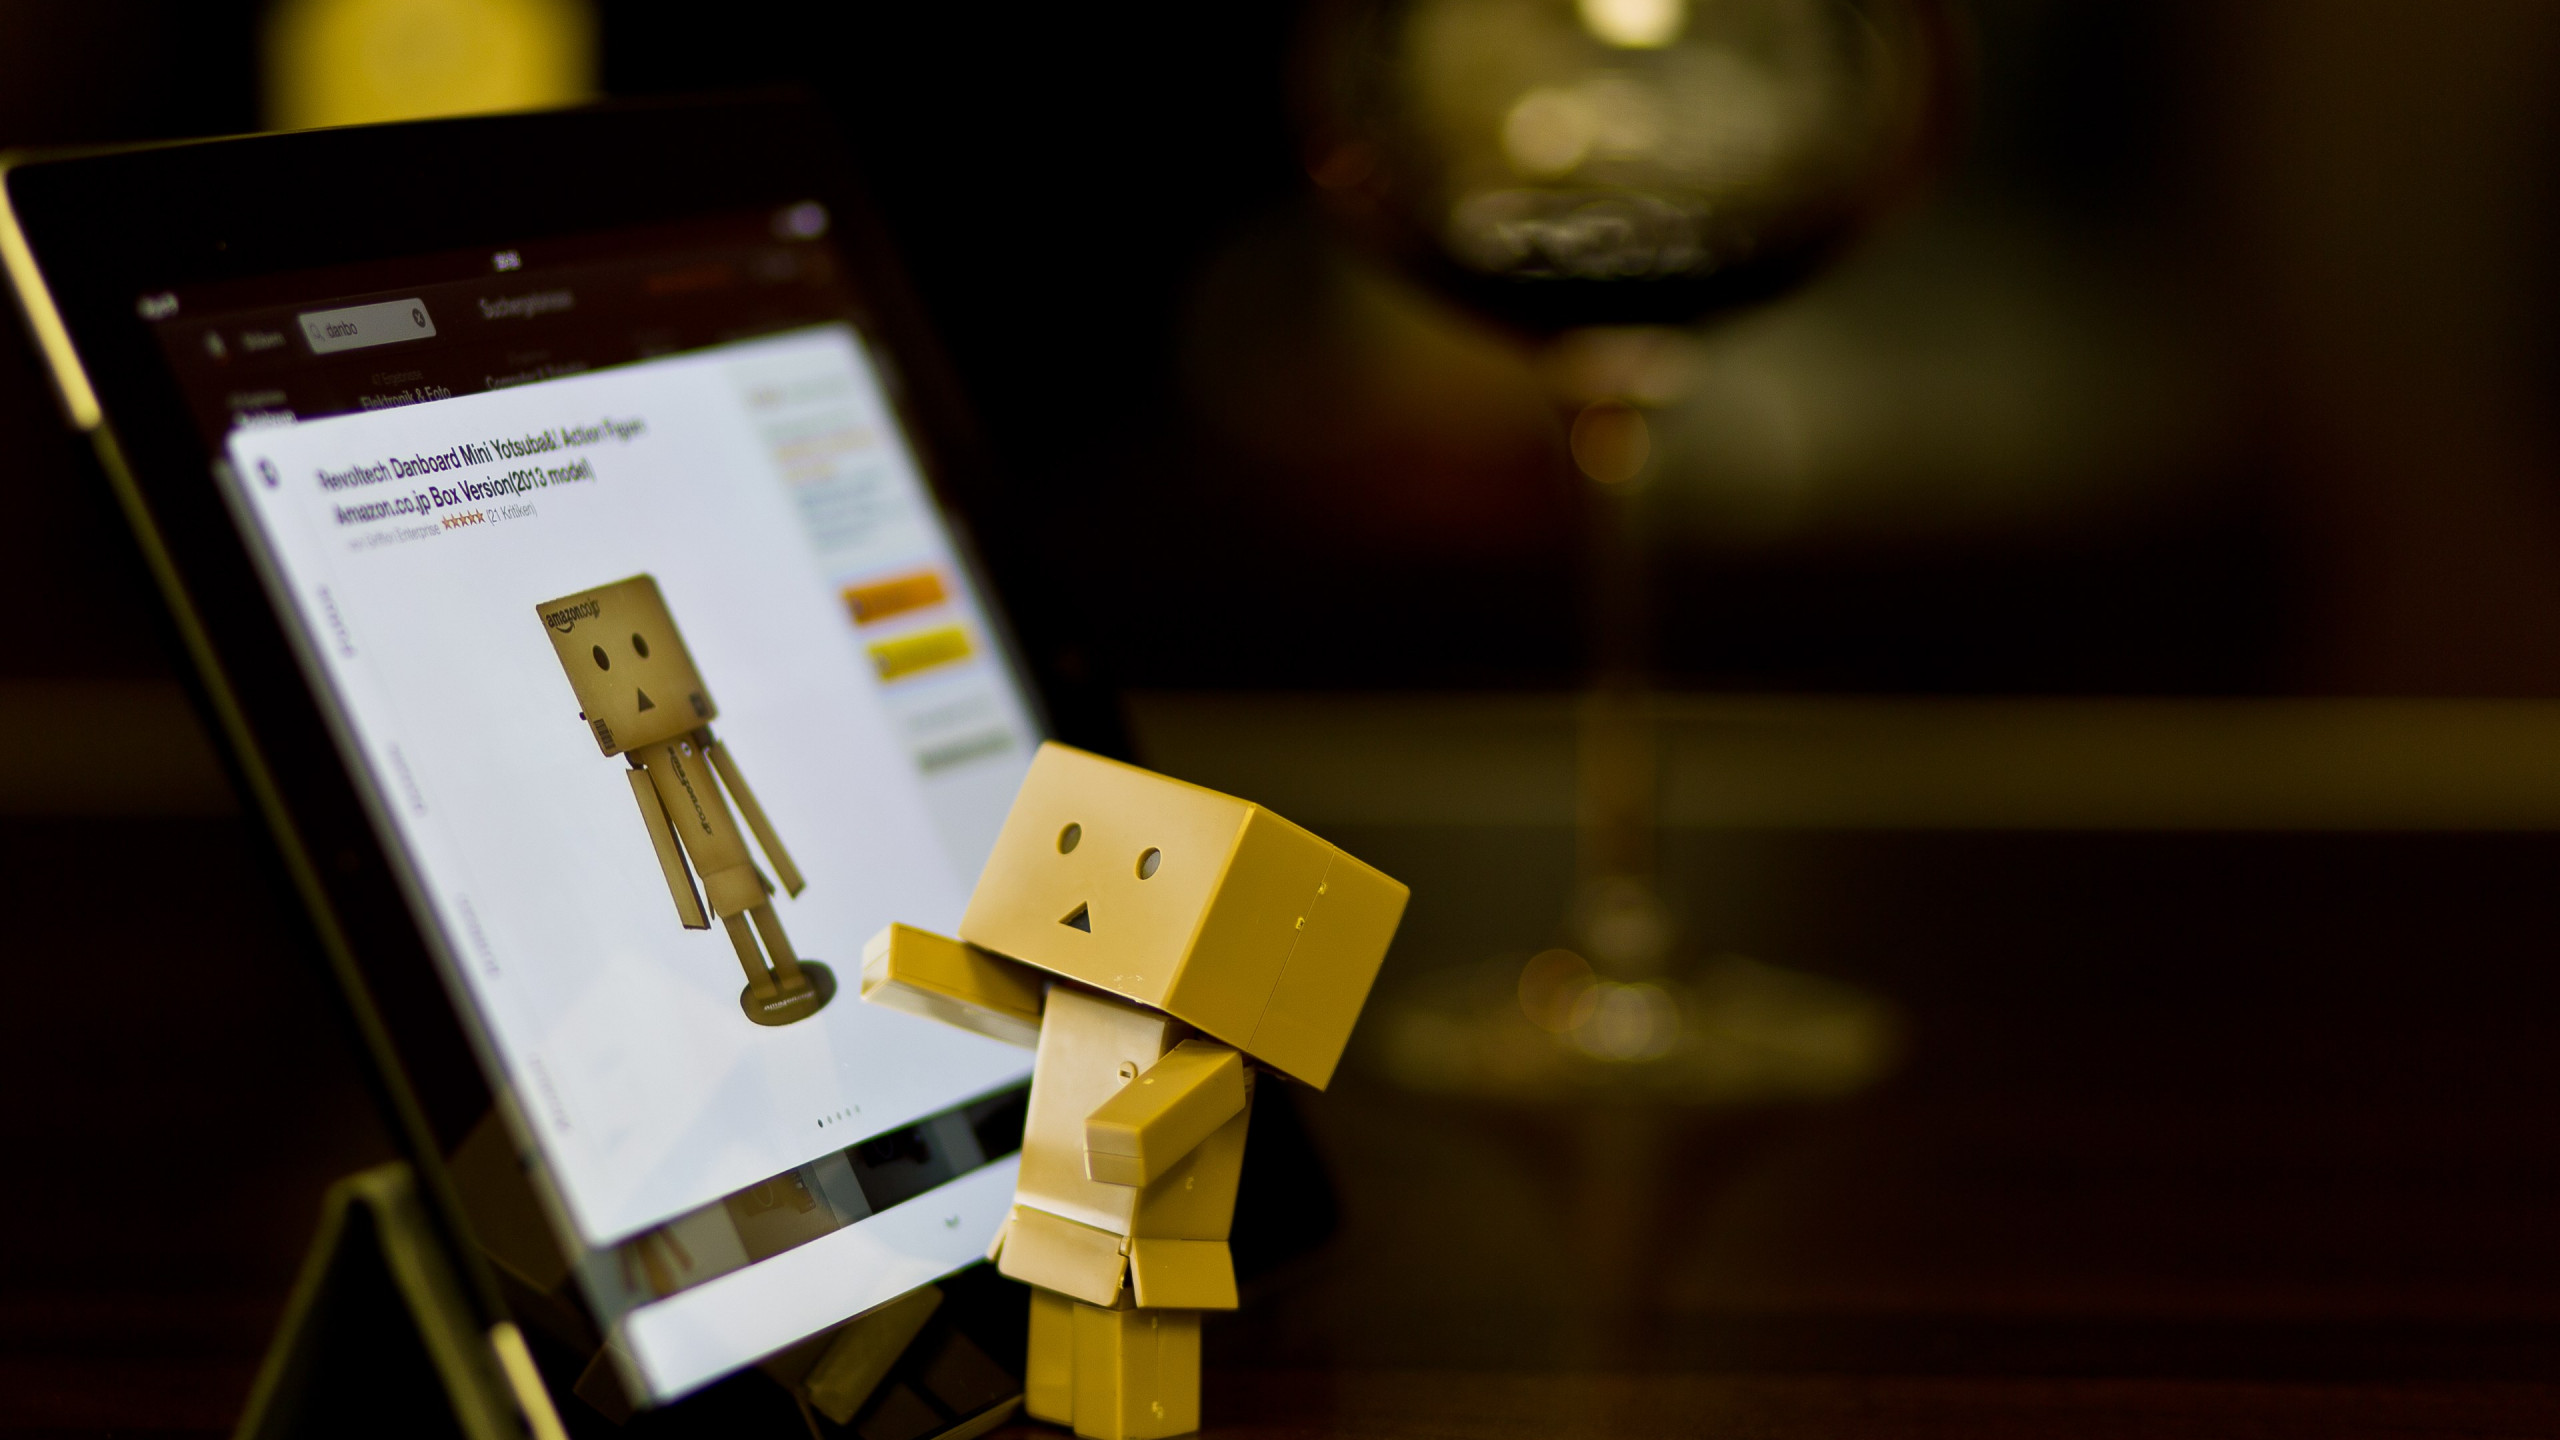 Danbo with tablet | 2560x1440 wallpaper